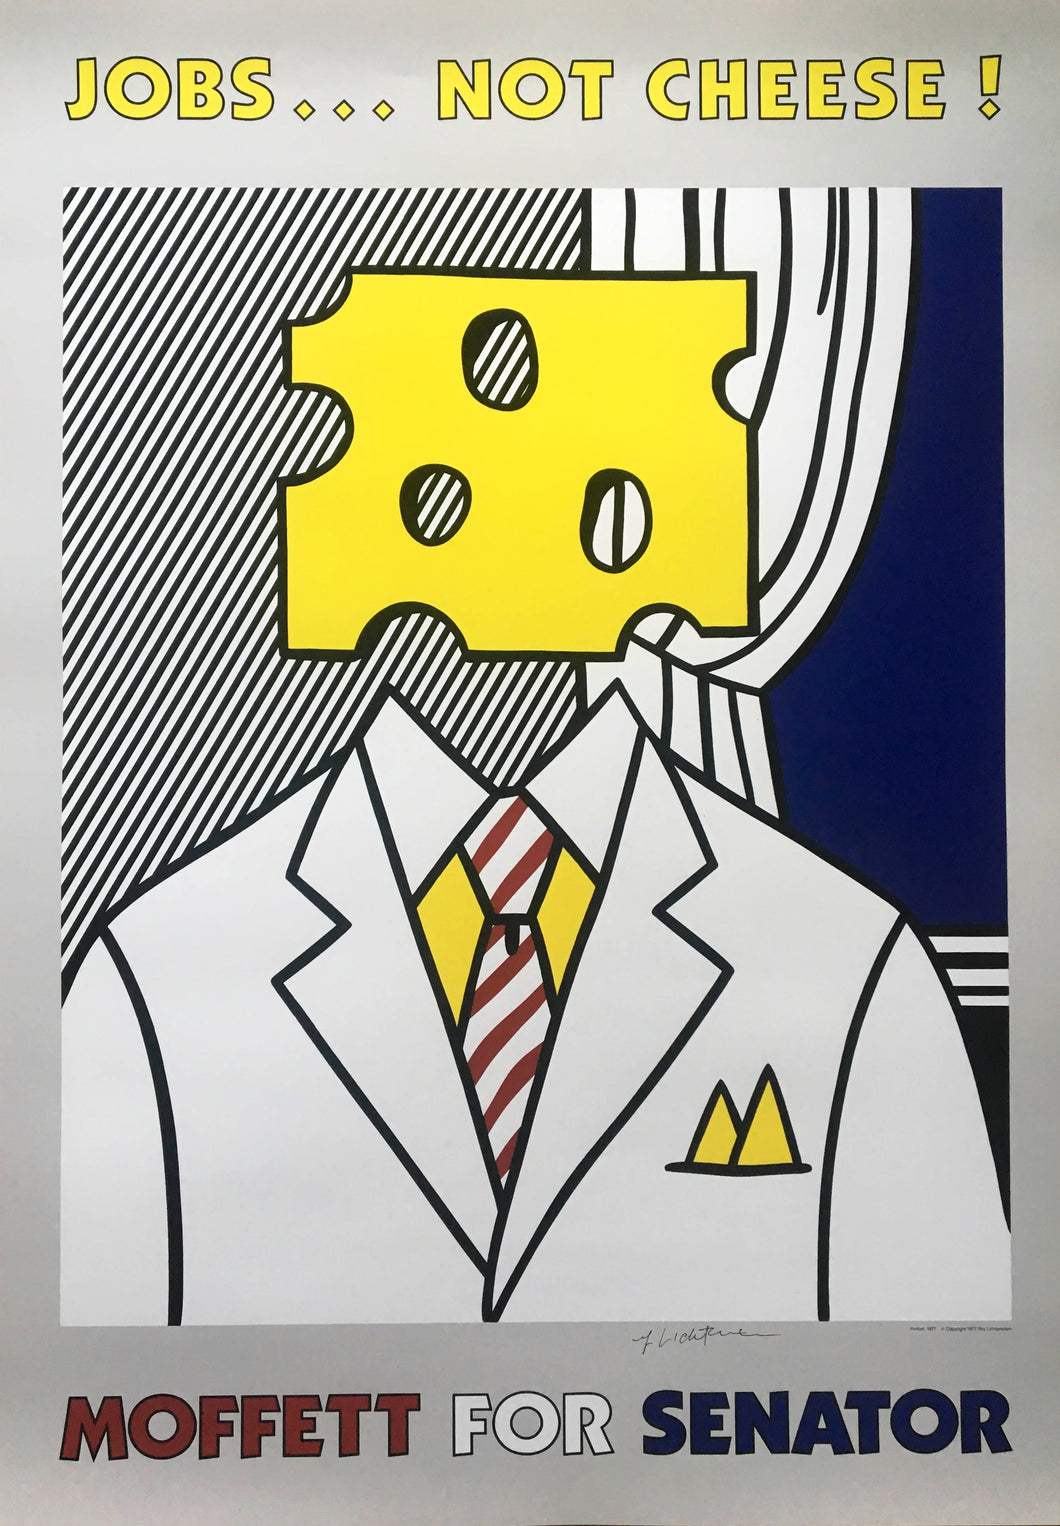 Roy Lichtenstein 'Jobs... Not Cheese', Original Pop Art Poster, Hand Signed, 1982